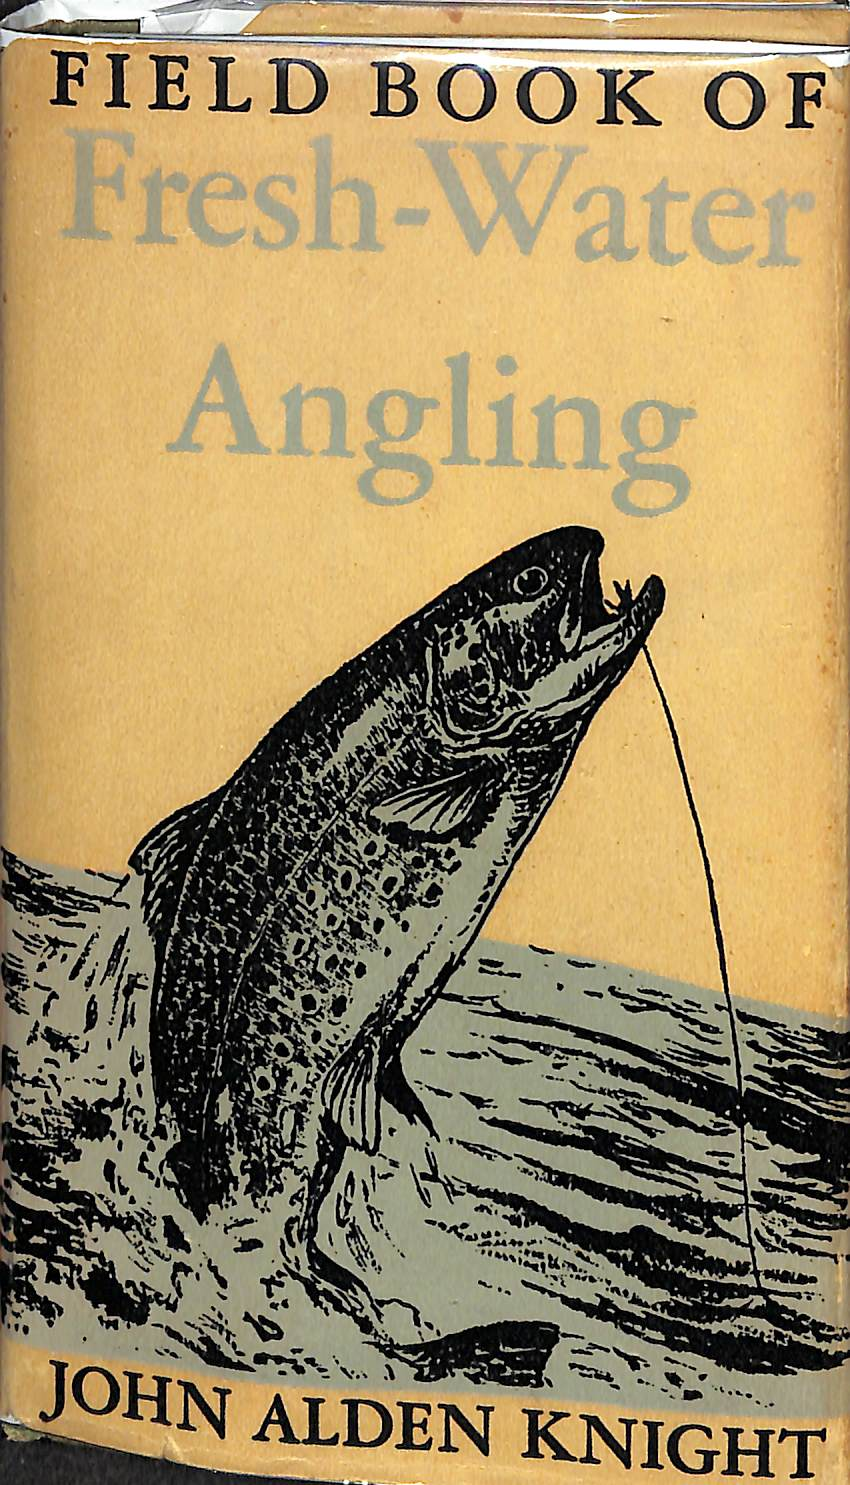 Field Book of Fresh-Water Angling